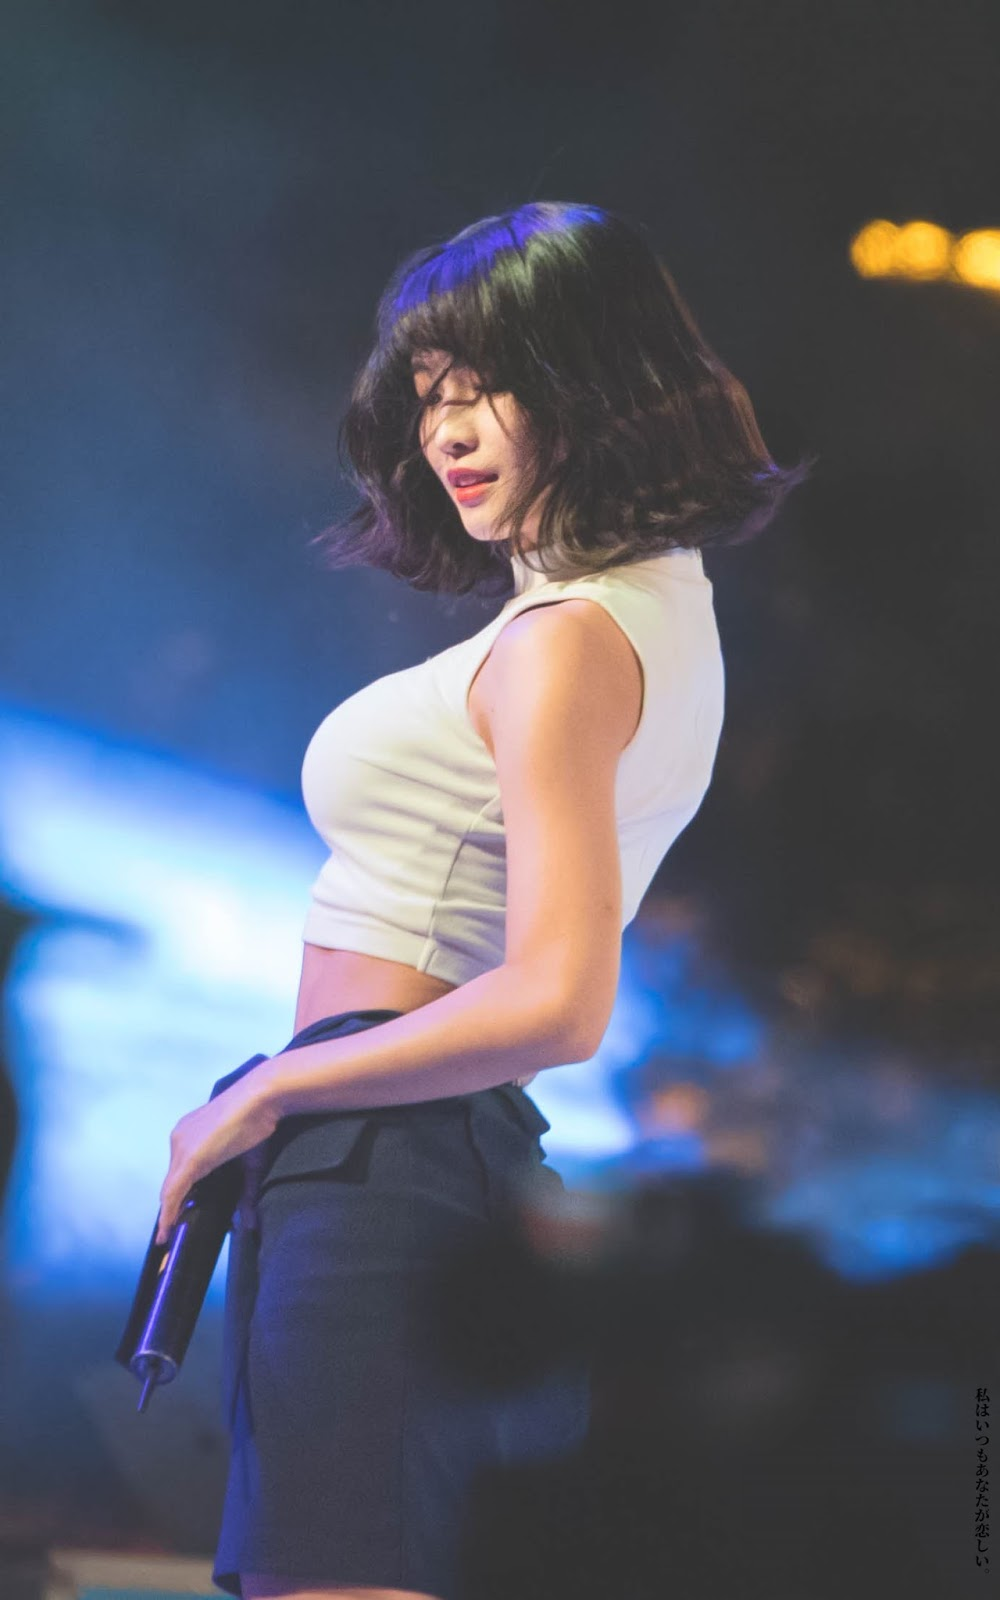 twice momo drops jaws with her voluminous figure